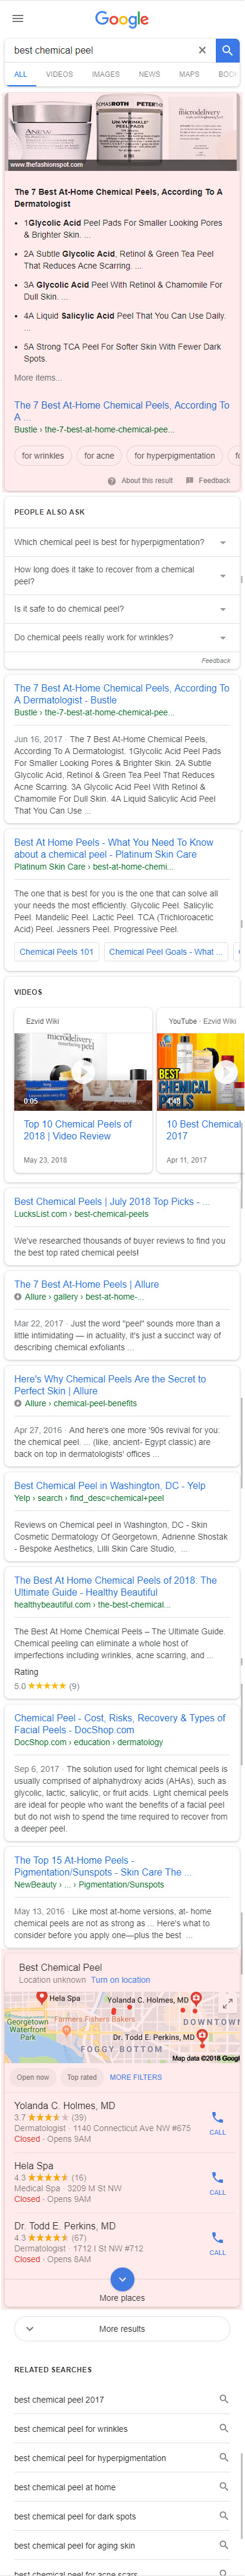 Mobile SERP with Featured Snippet & Local Pack